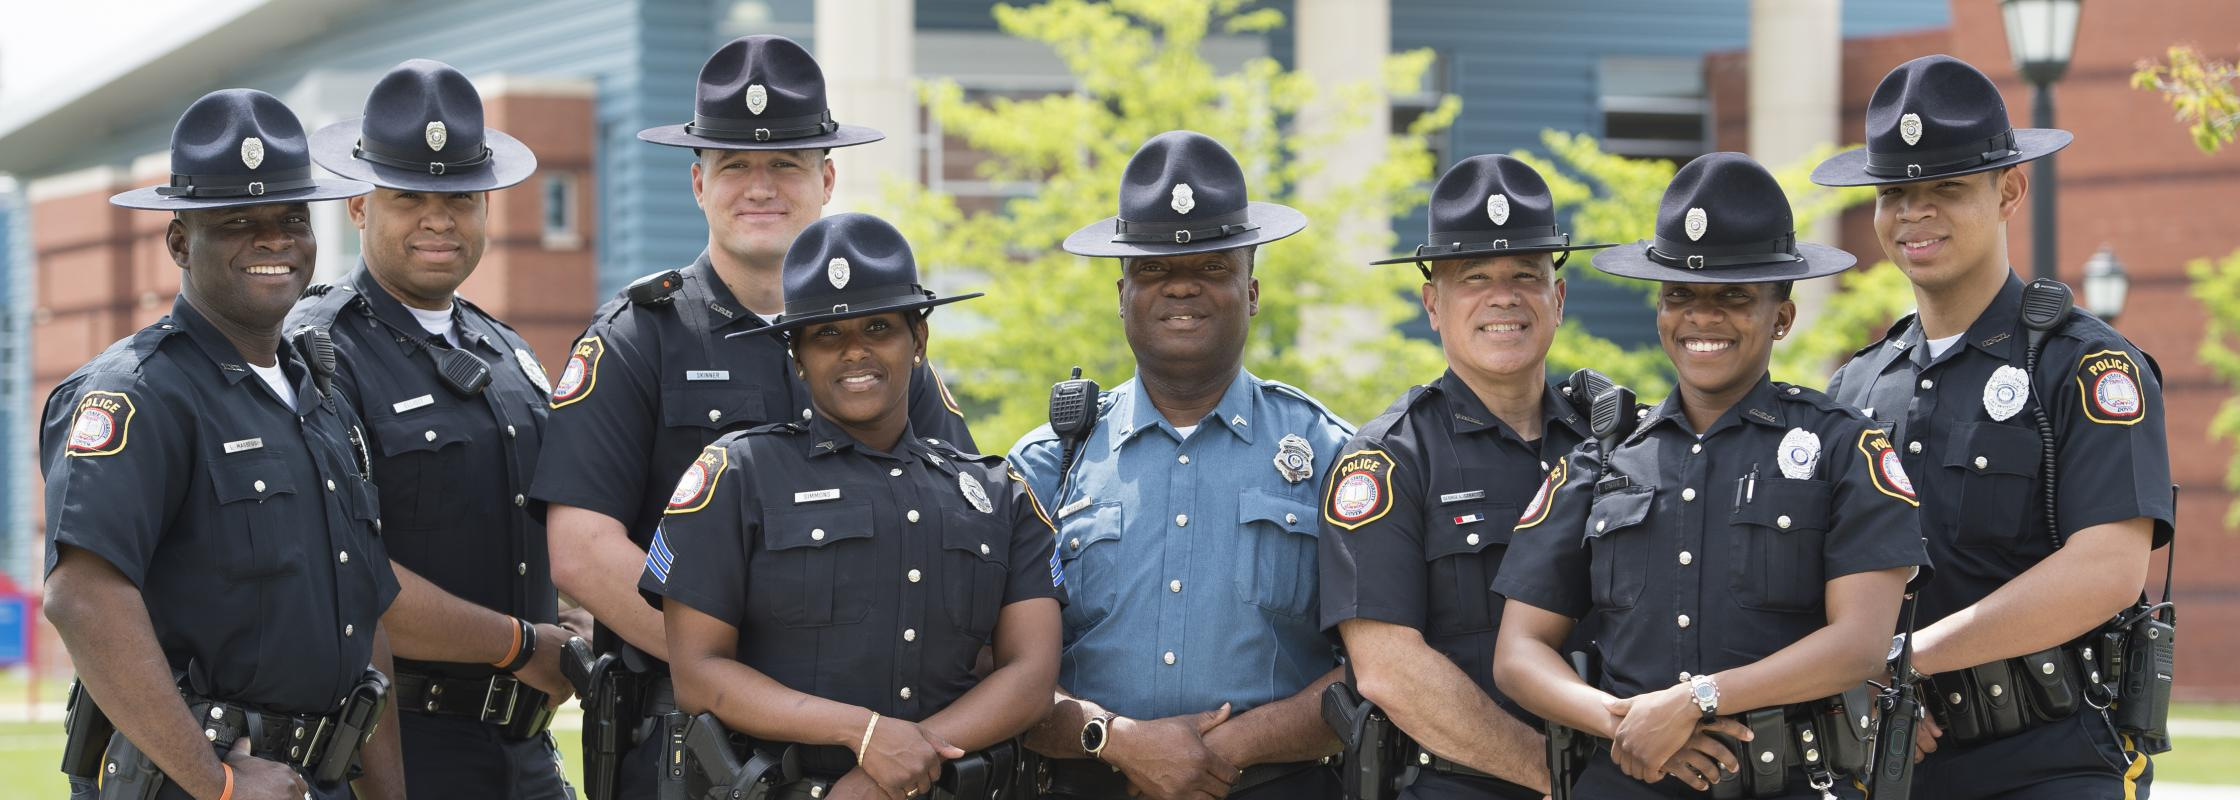 DSU Police Department Staff